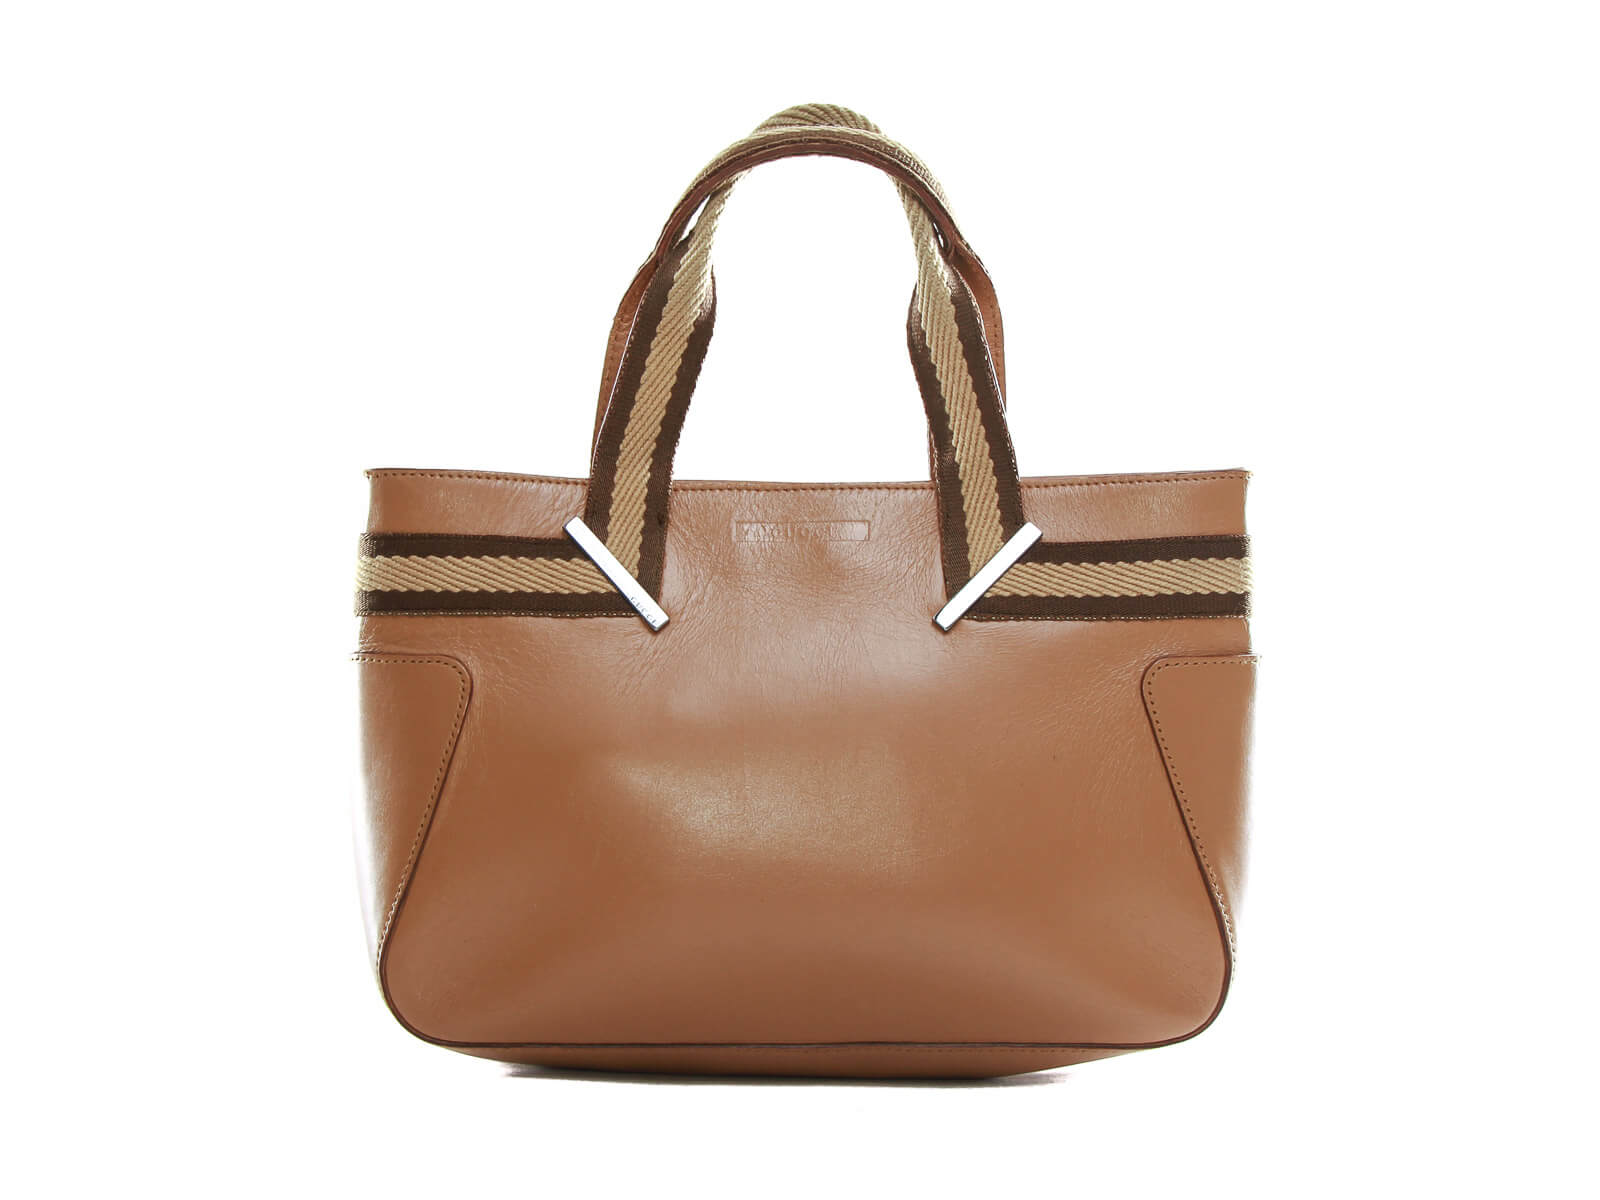 Authentic Gucci Tan leather small Tote hand bag